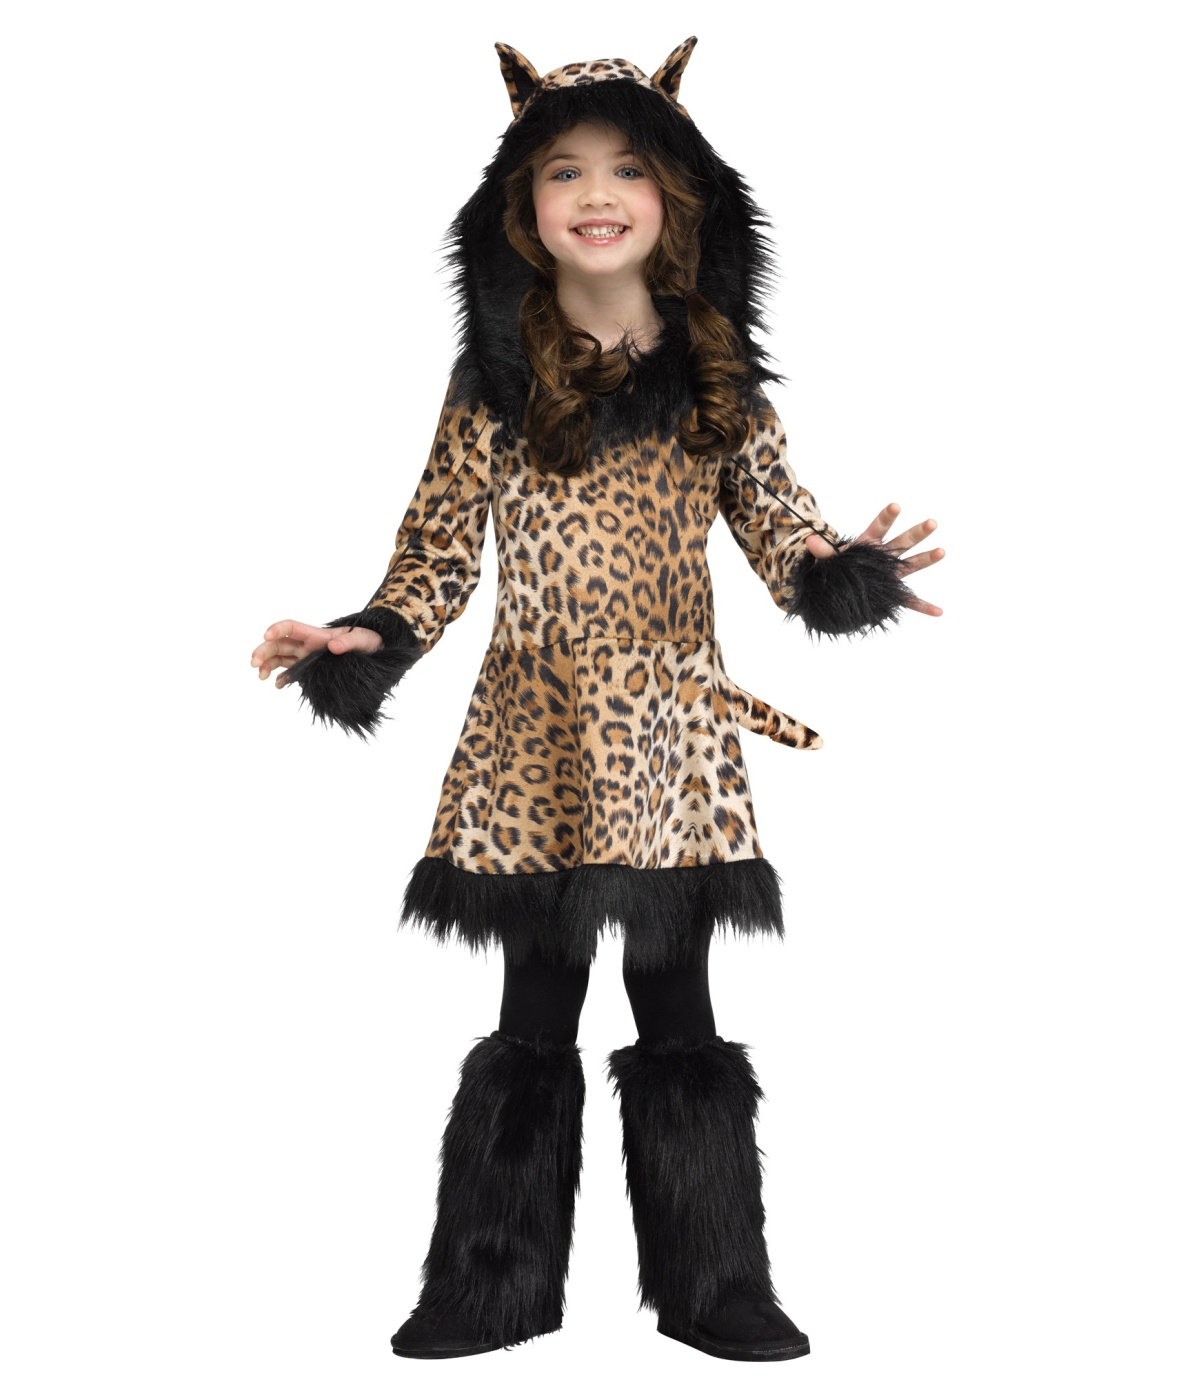 015fb90d4469 National Leopard Girls Costume - Animal Costumes